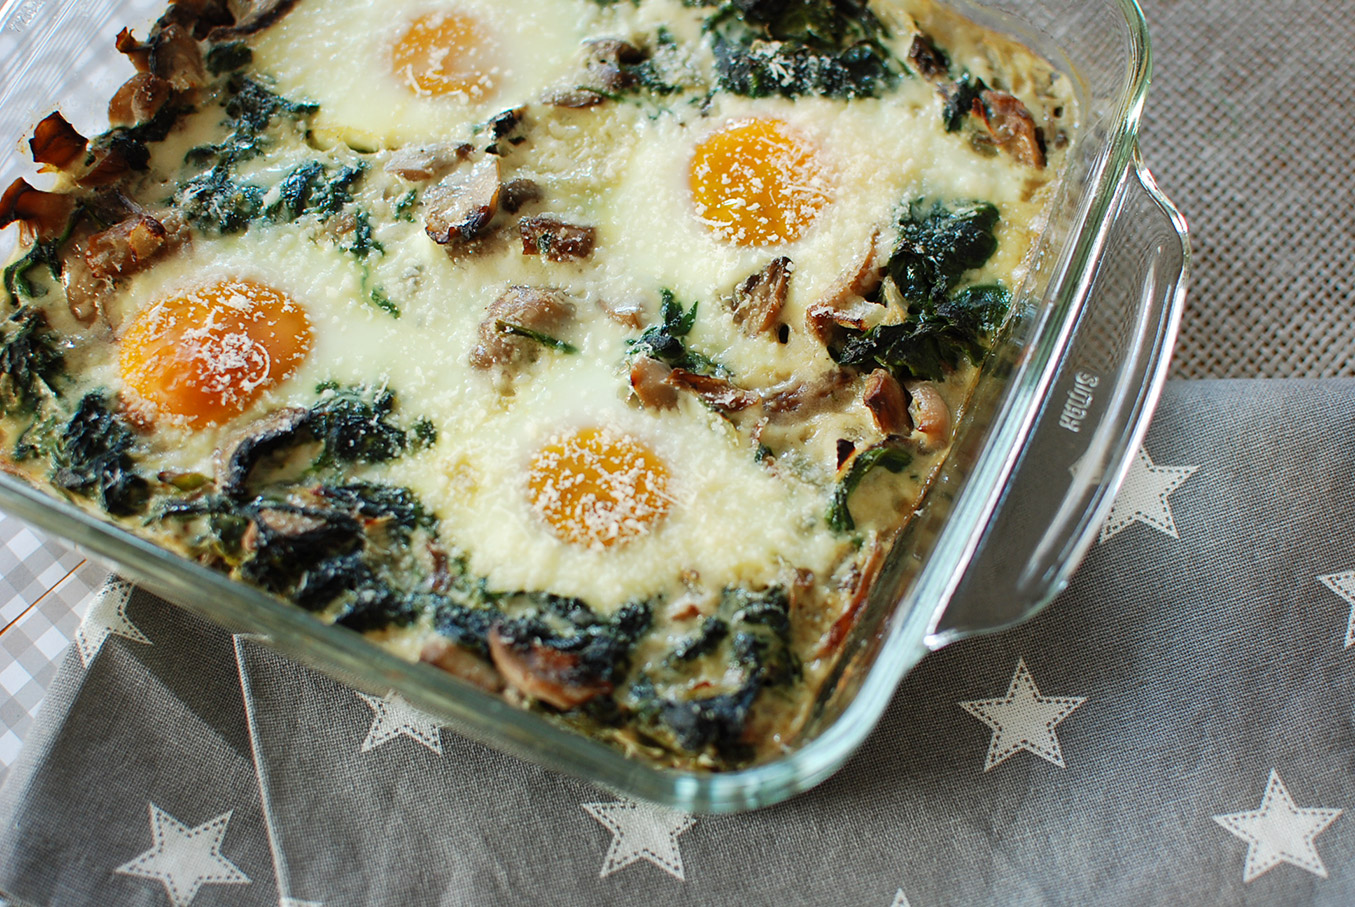 Baked-spinach-and-eggs-1